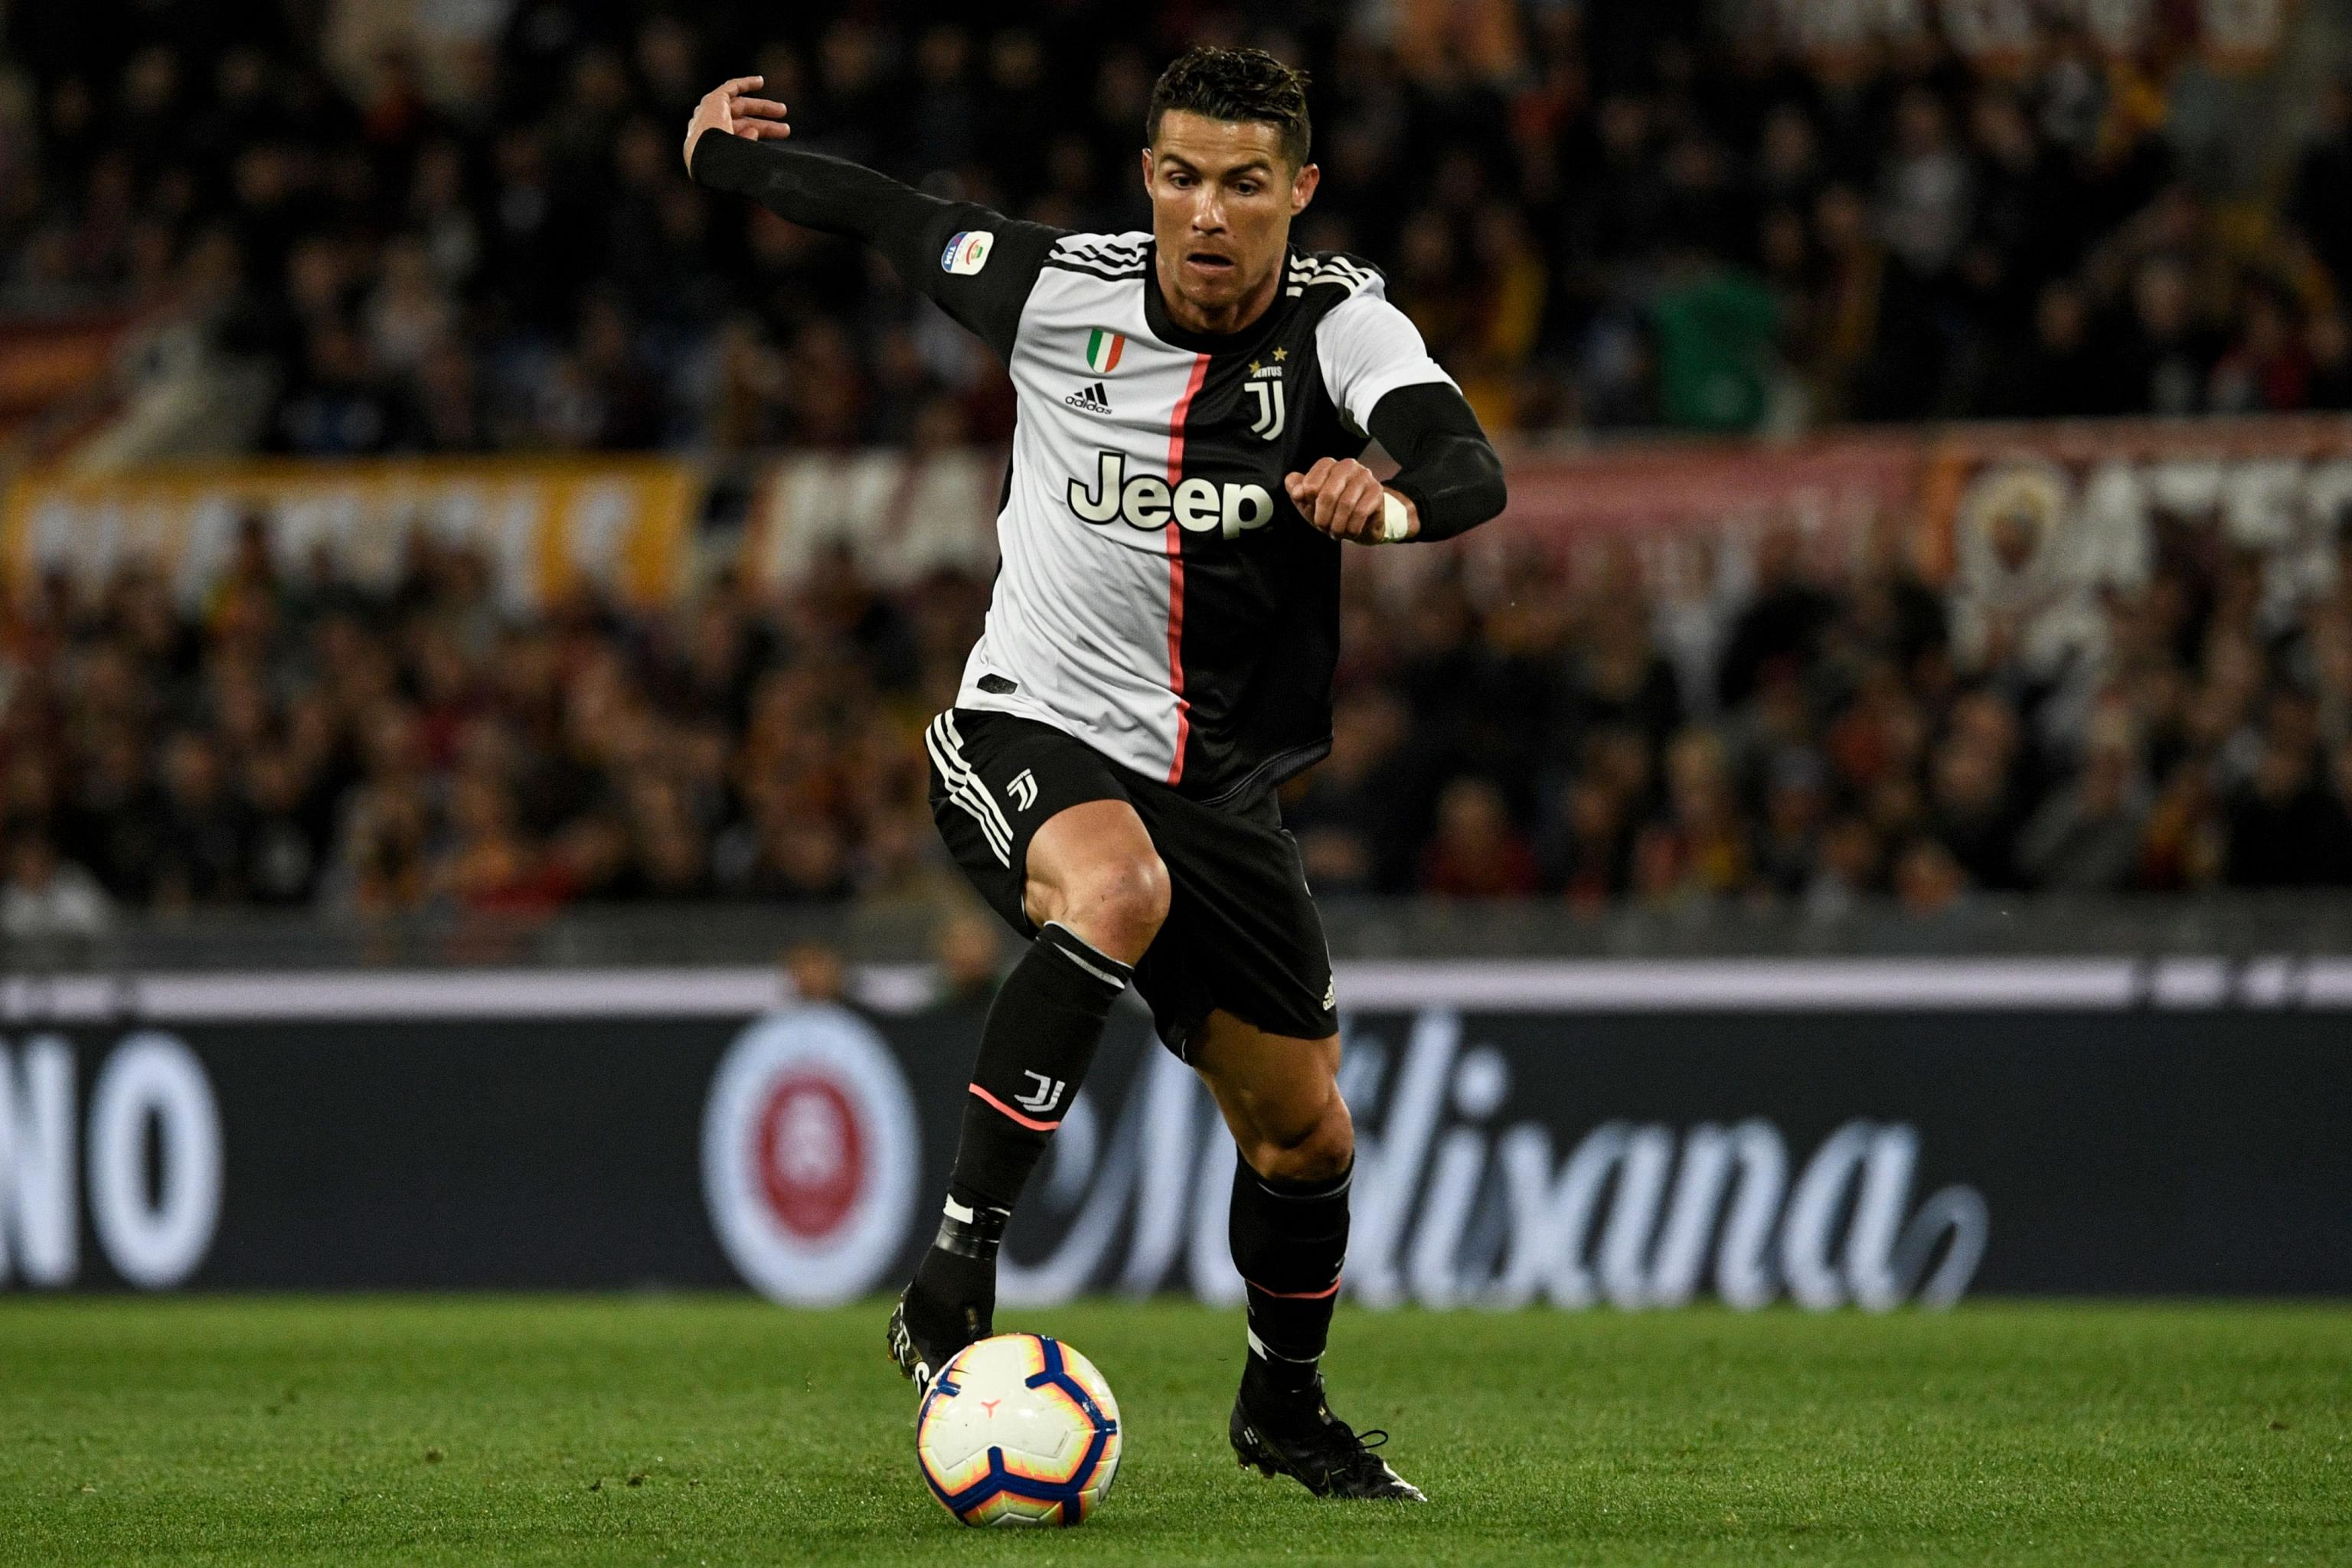 Cristiano Ronaldo Wins Serie A Mvp In 1st Season With Juventus Bleacher Report Latest News Videos And Highlights